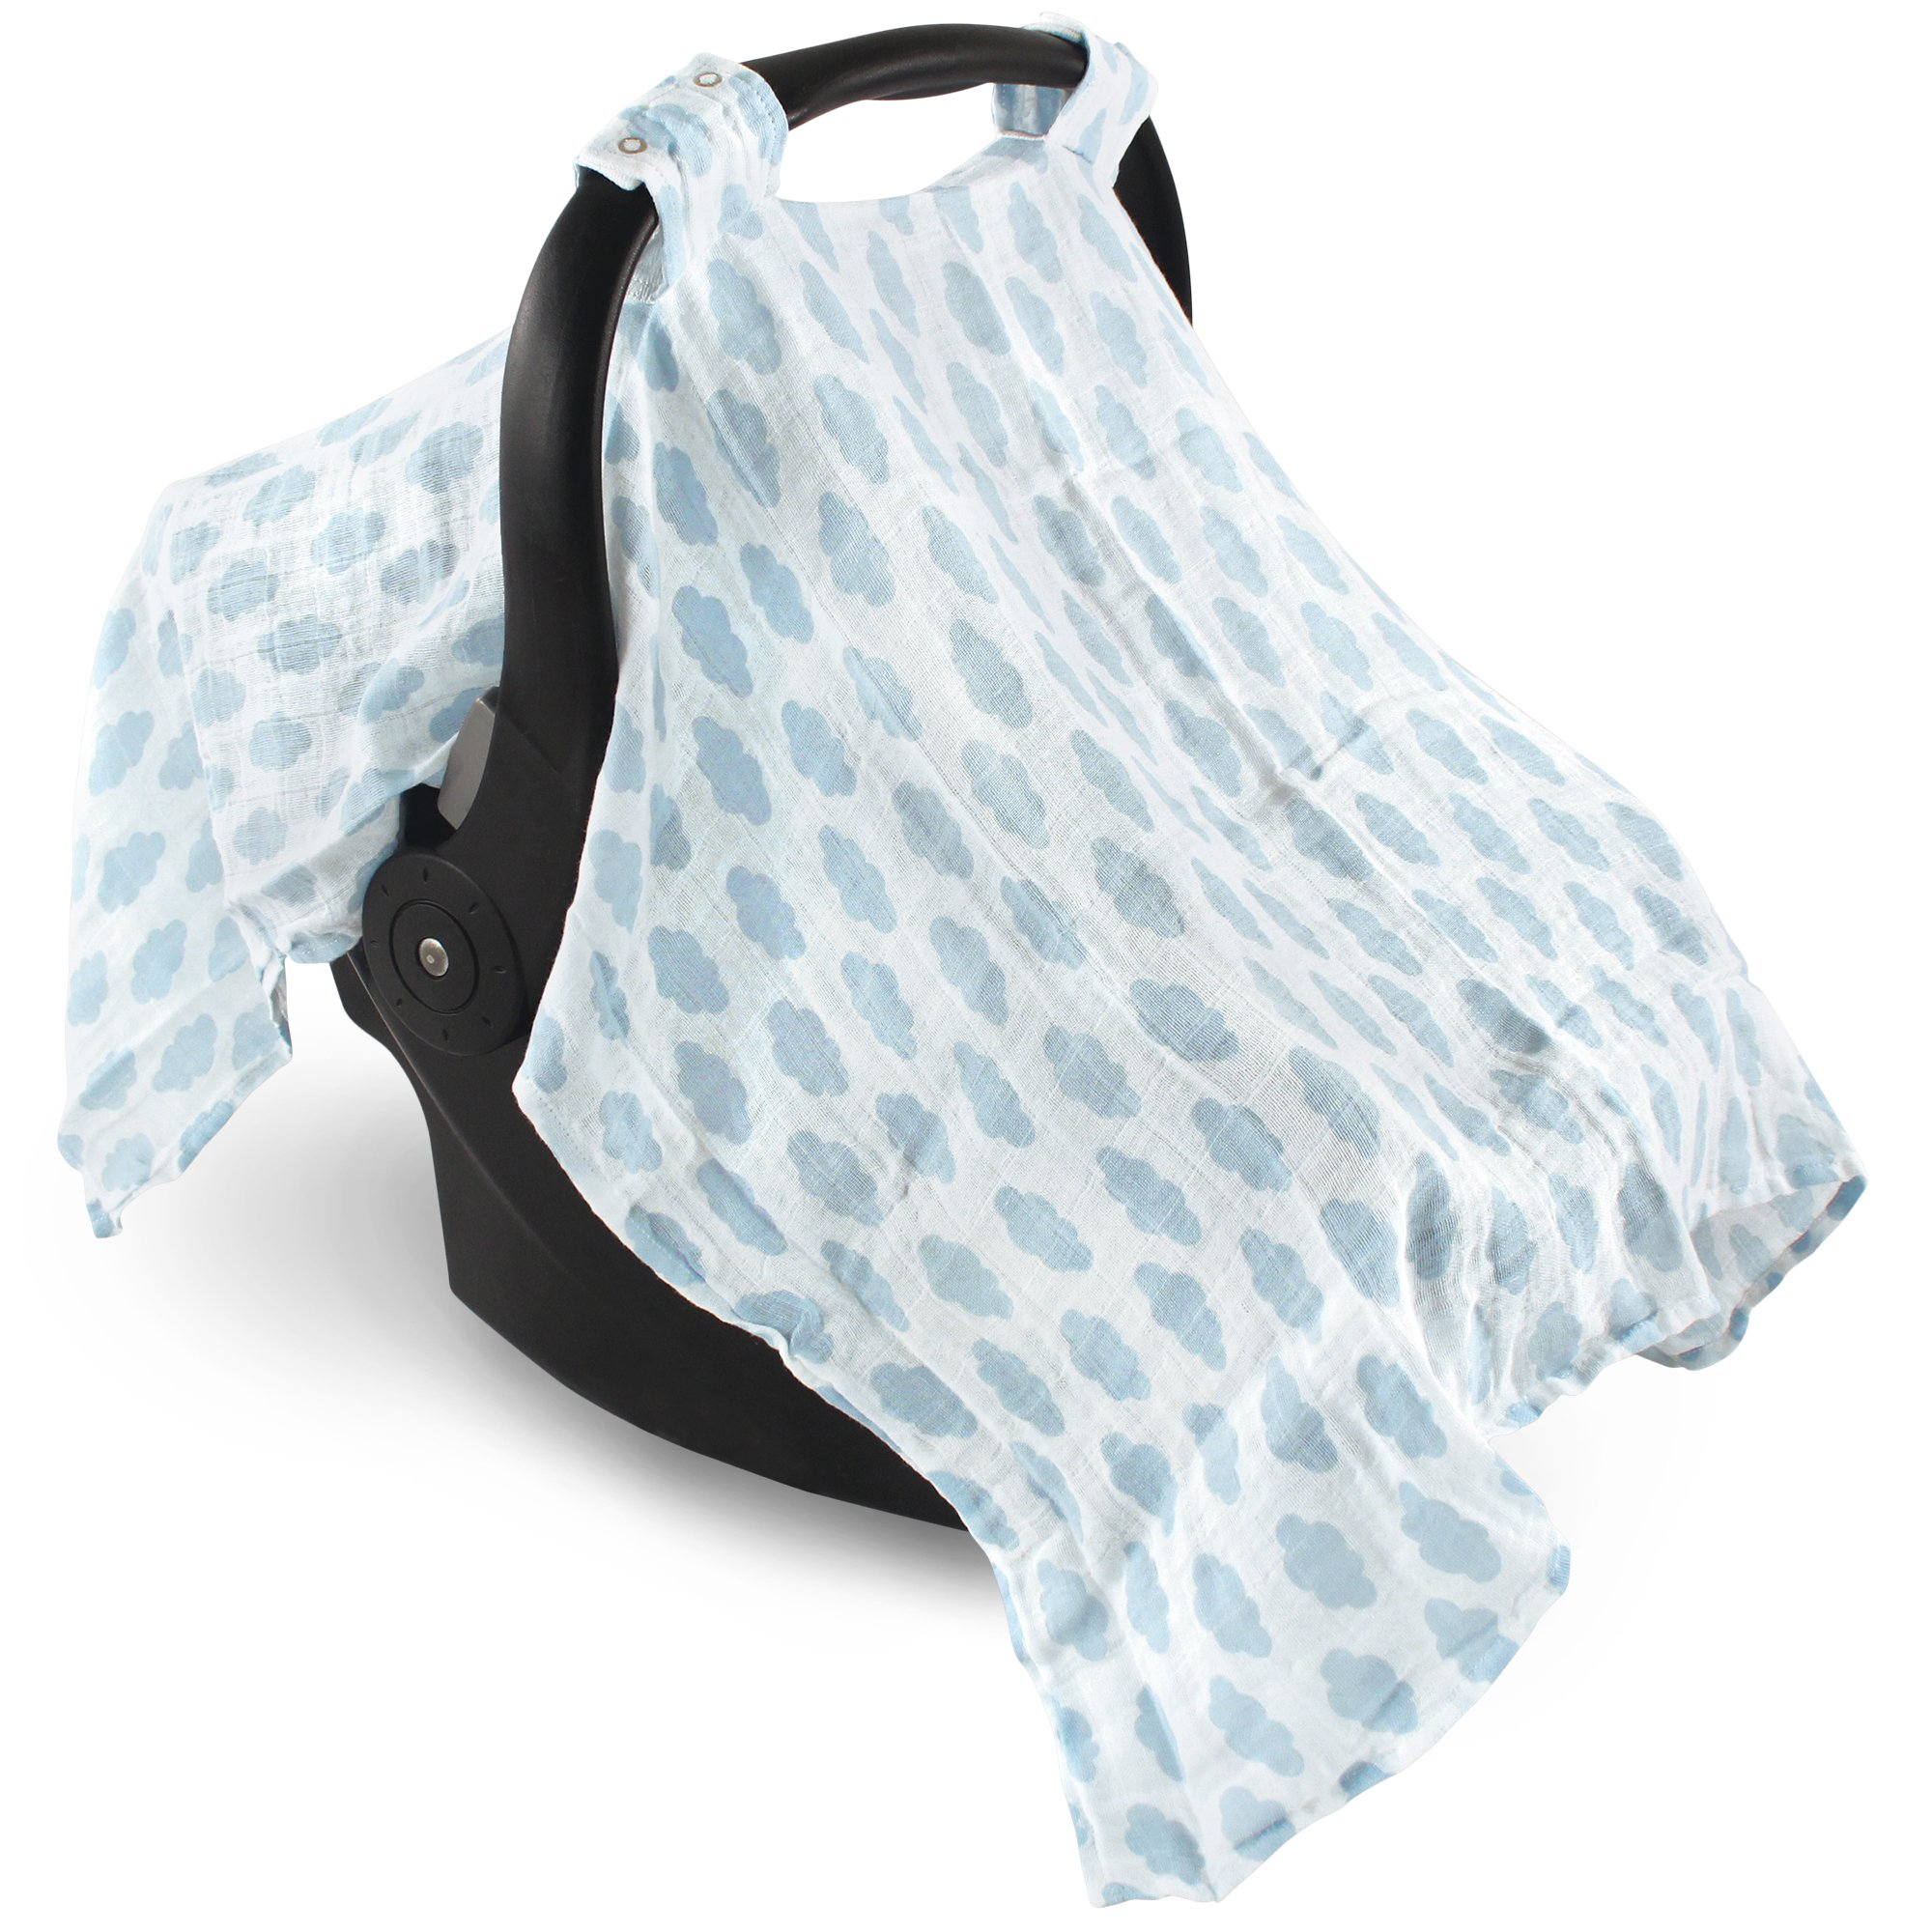 Hudson Baby Unisex Baby Muslin Cotton Car Seat and Stroller Canopy, Blue Clouds, One Size